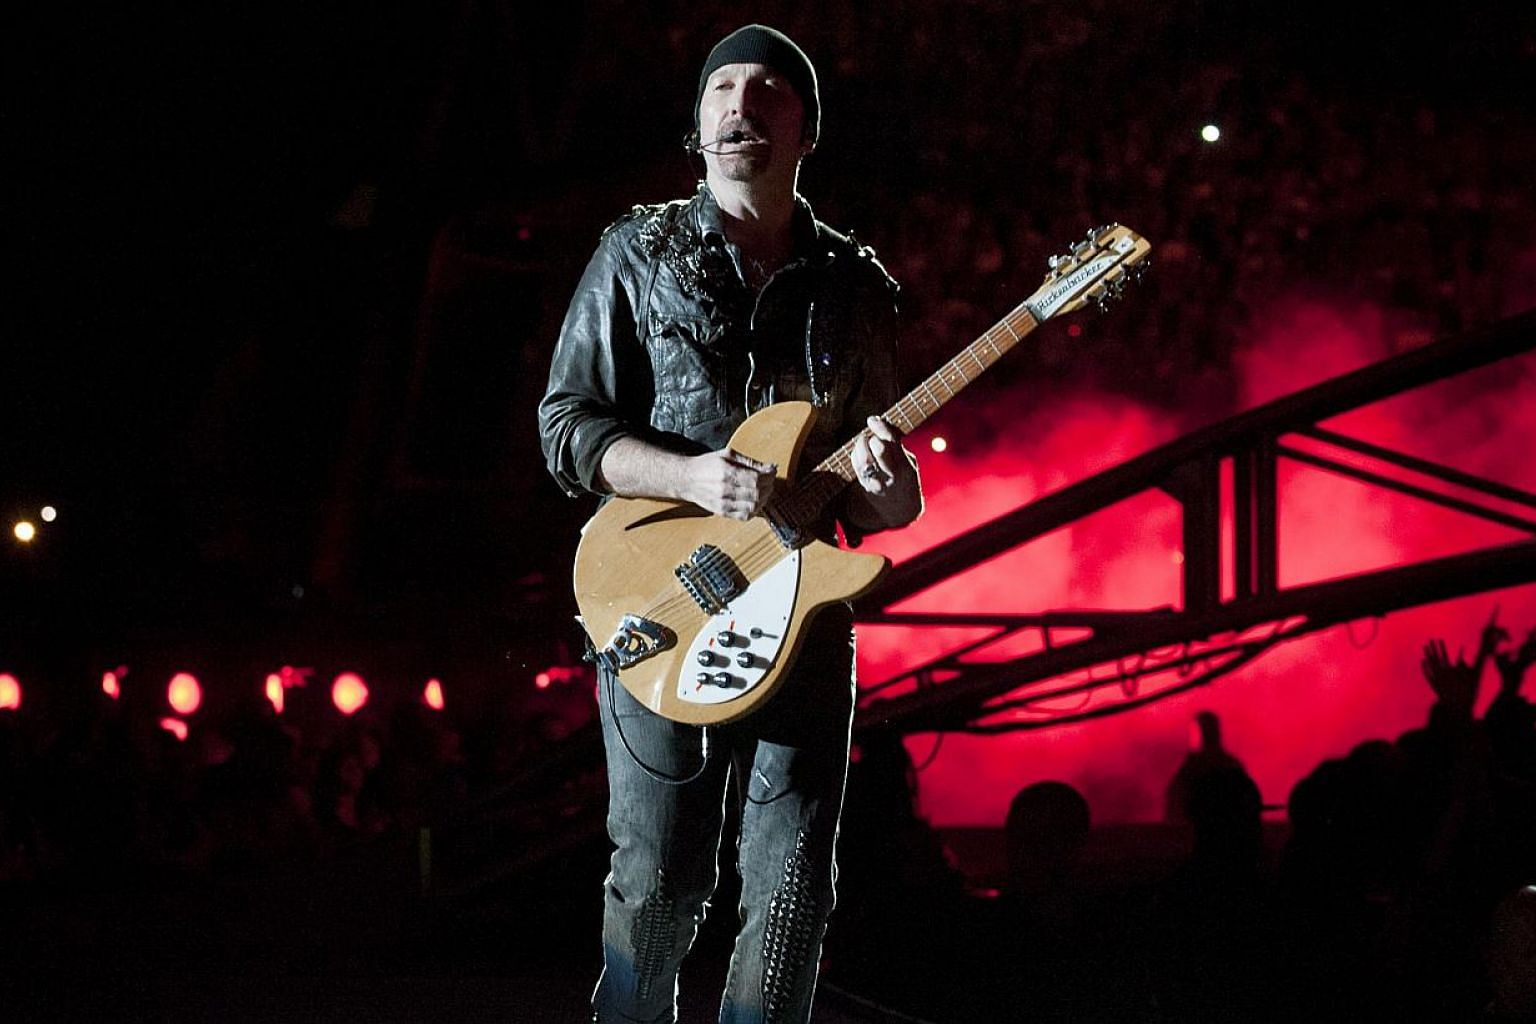 U2 guitarist The Edge (above, in a 2011 file photo) apparently did not see the part of the stage that is his own namesake as he tumbled on the first night of the veteran Irish rockers' tour. -- PHOTO: AFP